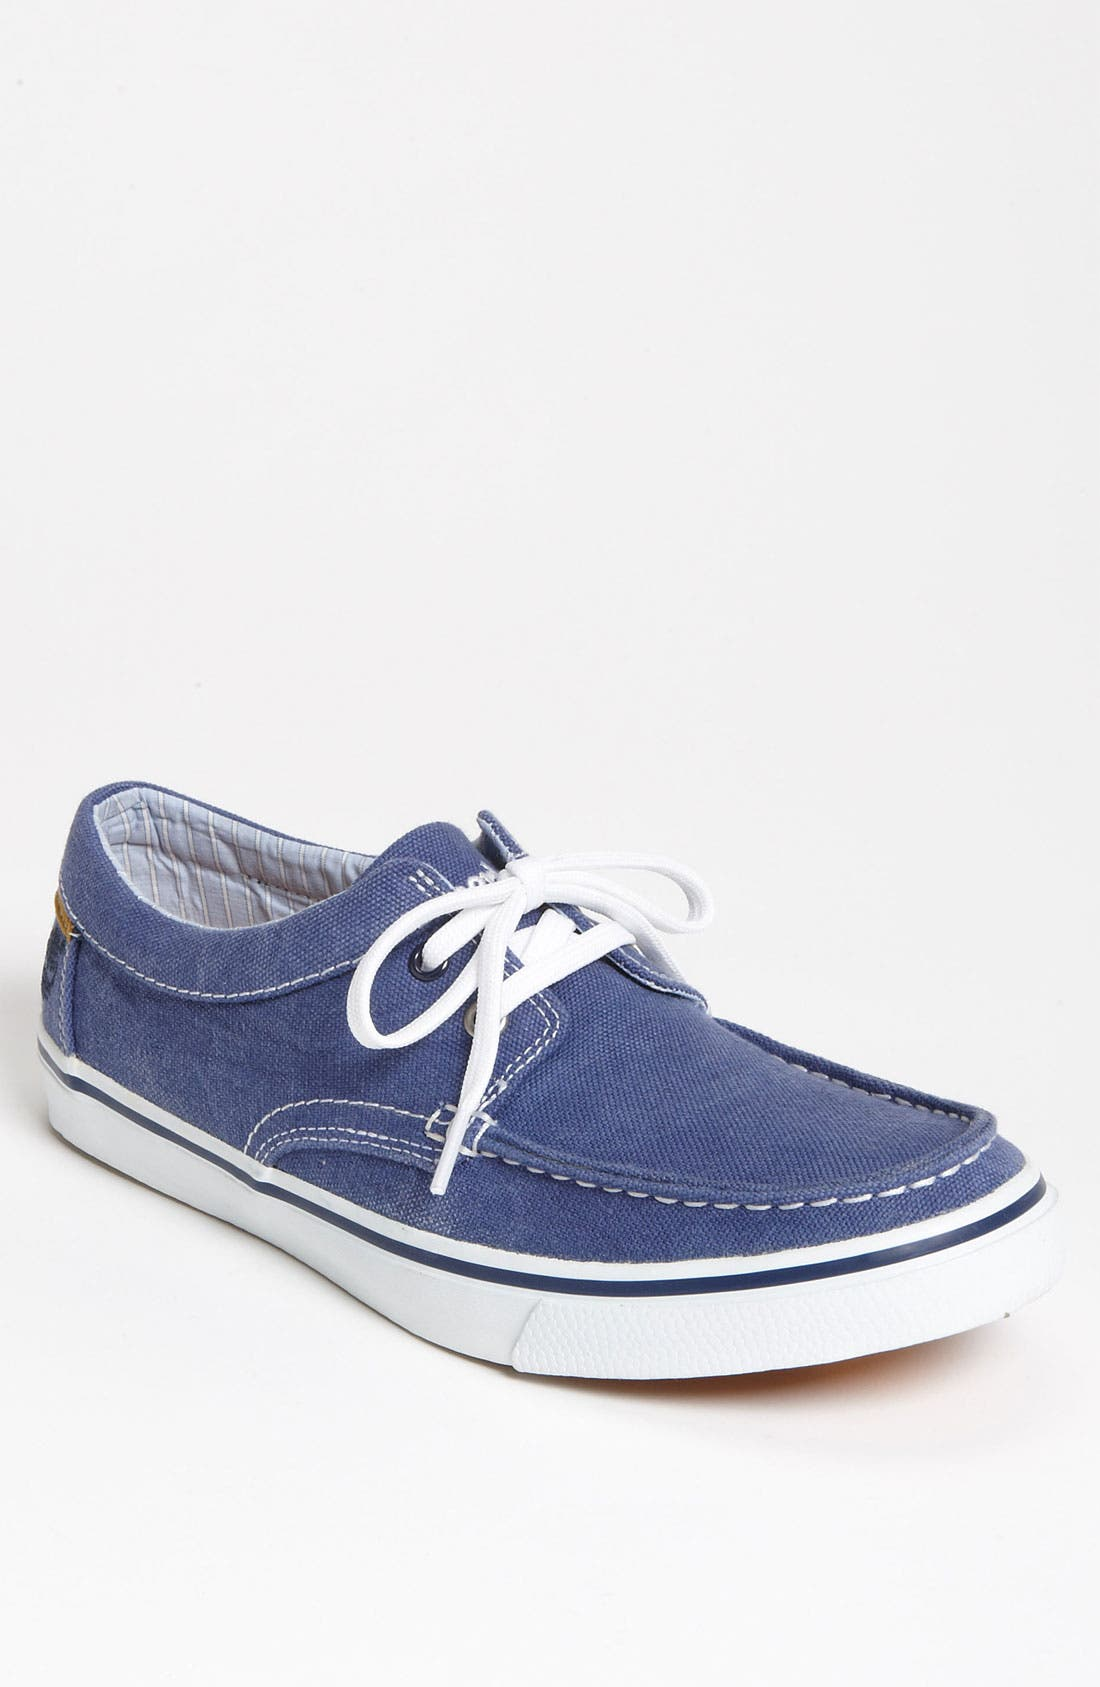 Alternate Image 1 Selected - Timberland Earthkeepers® 'Hookset' Boat Shoe